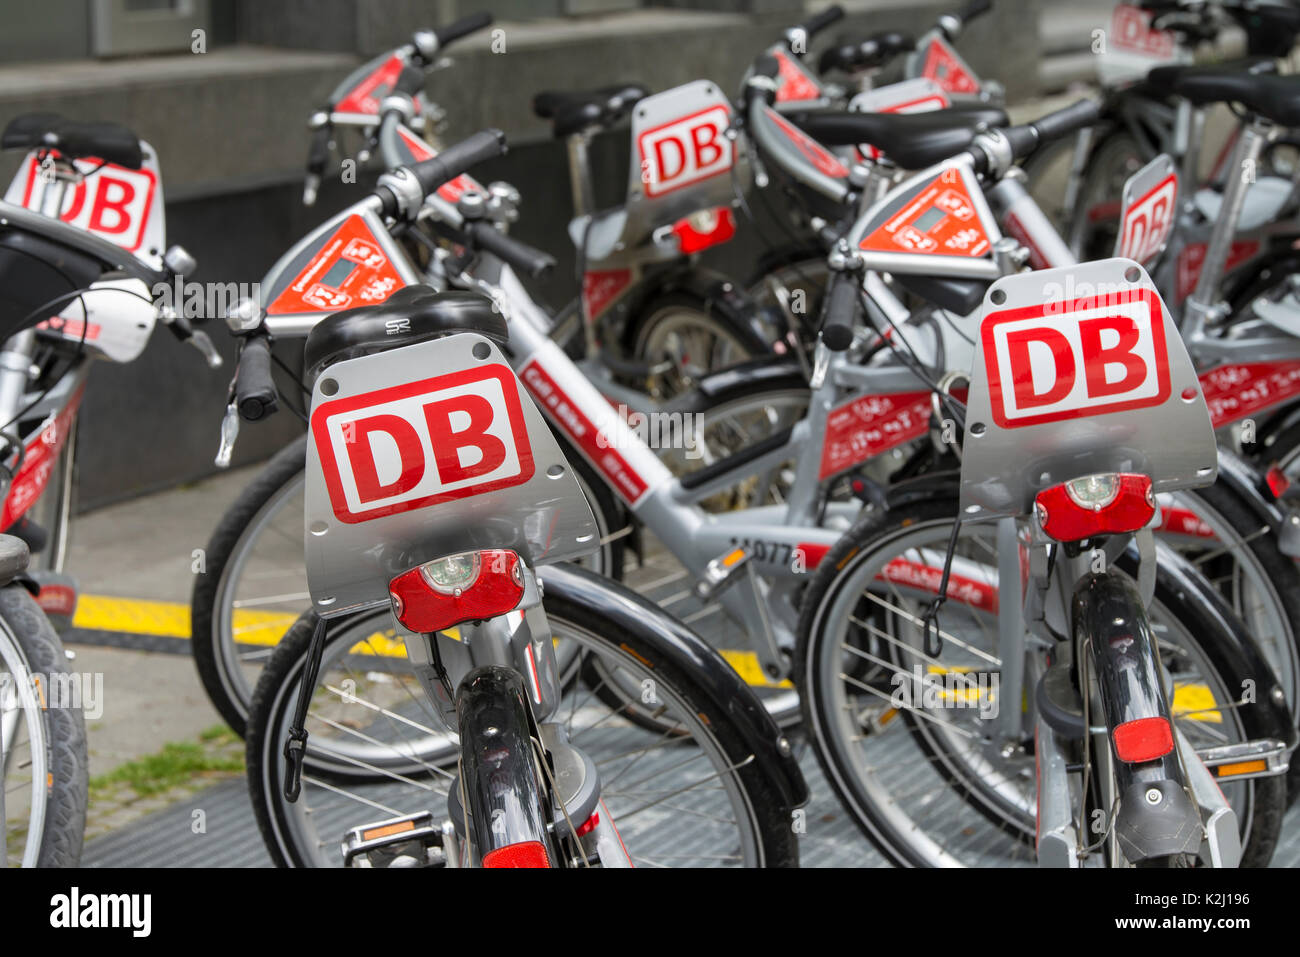 Bicycles from Call a Bike of Deutsche Bahn Stock Photo